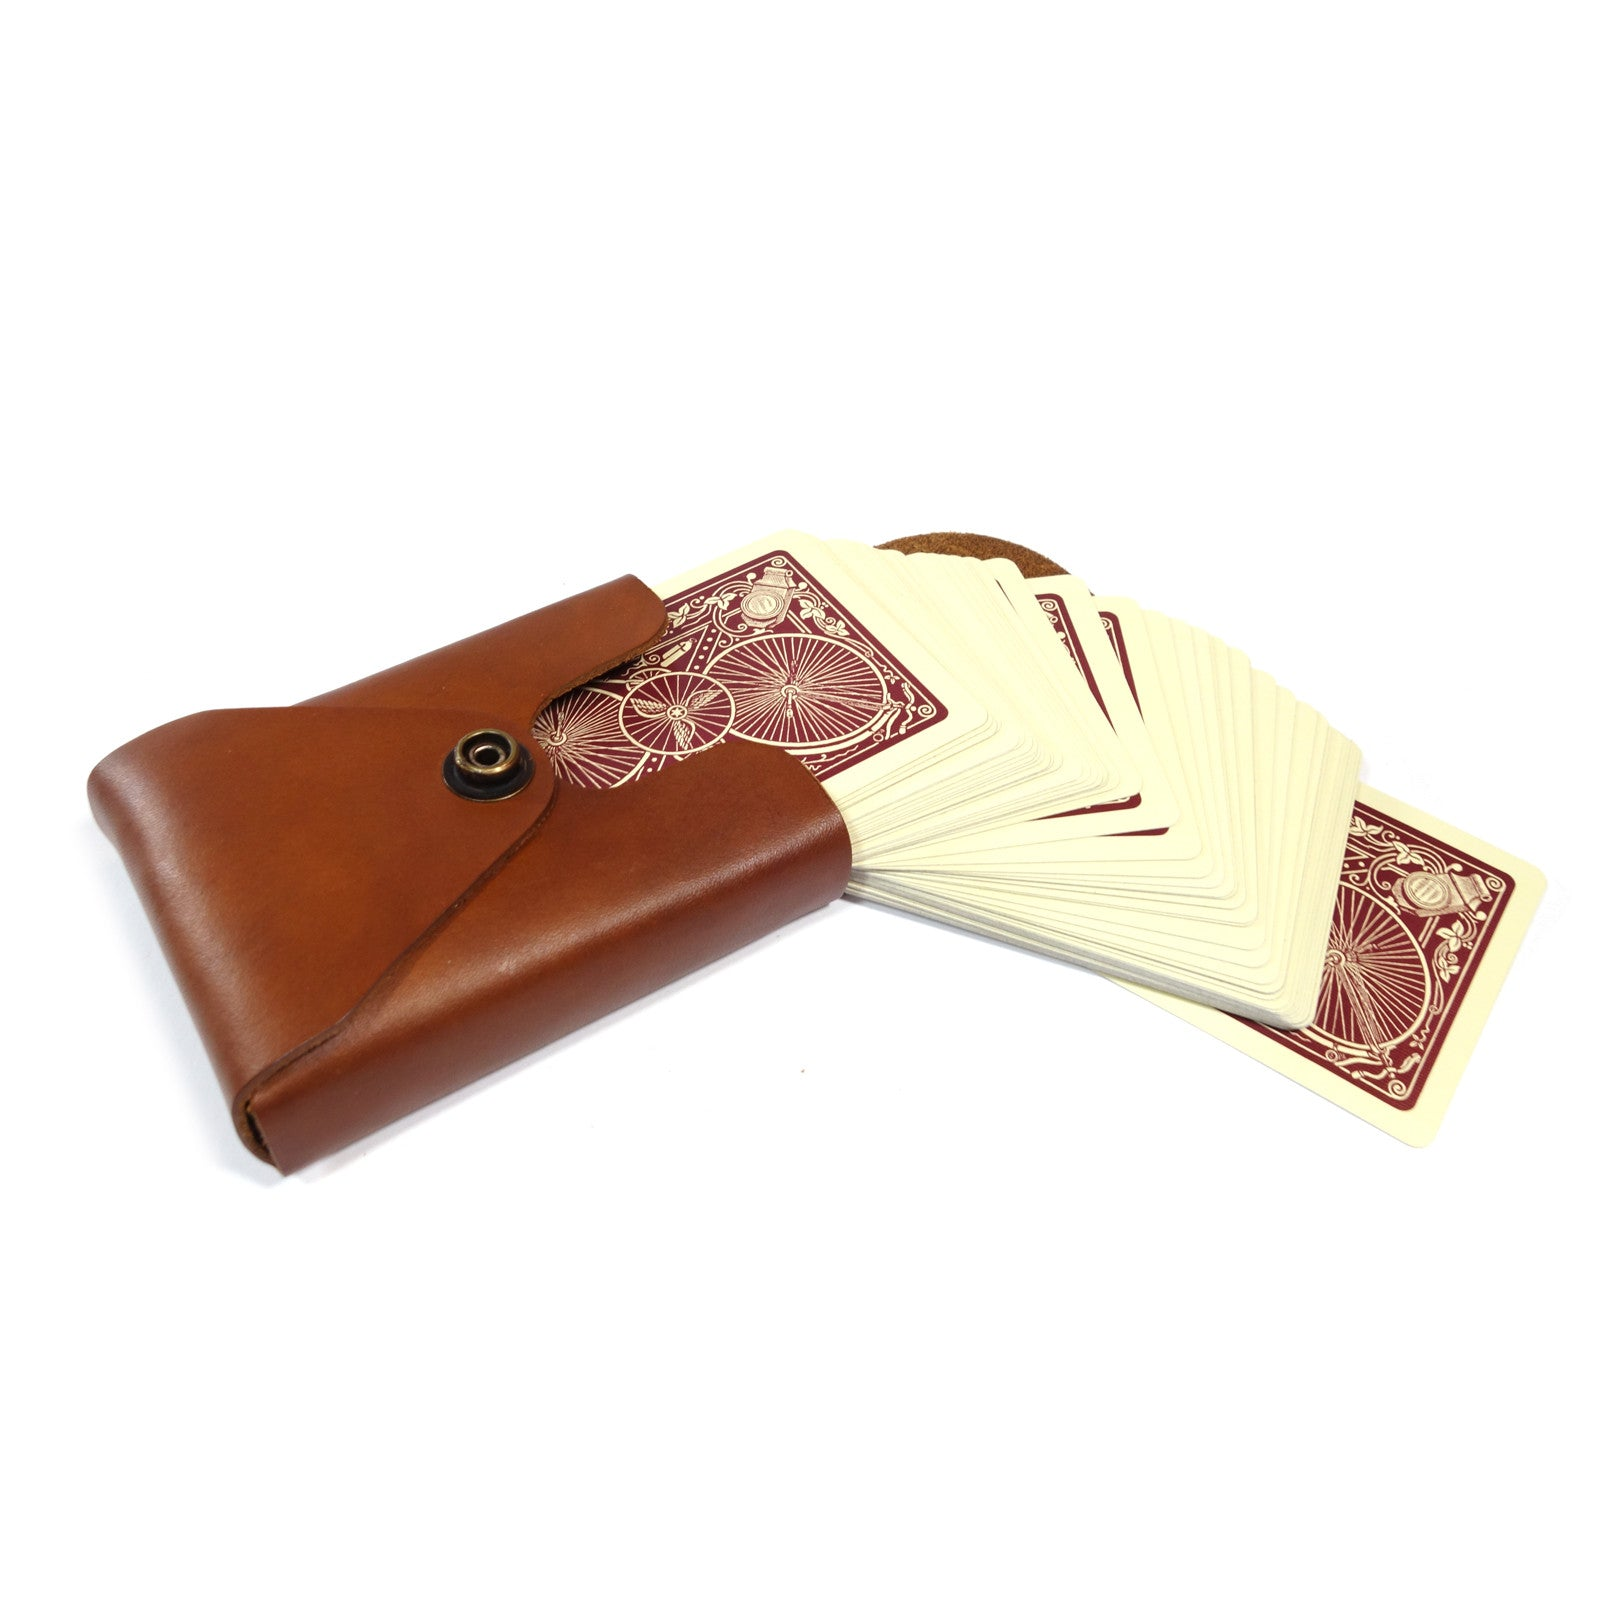 Leather Card Case, playing cards, bicycle cards, poker, card games, handmade, made in usa, handcrafted, leather case, card case